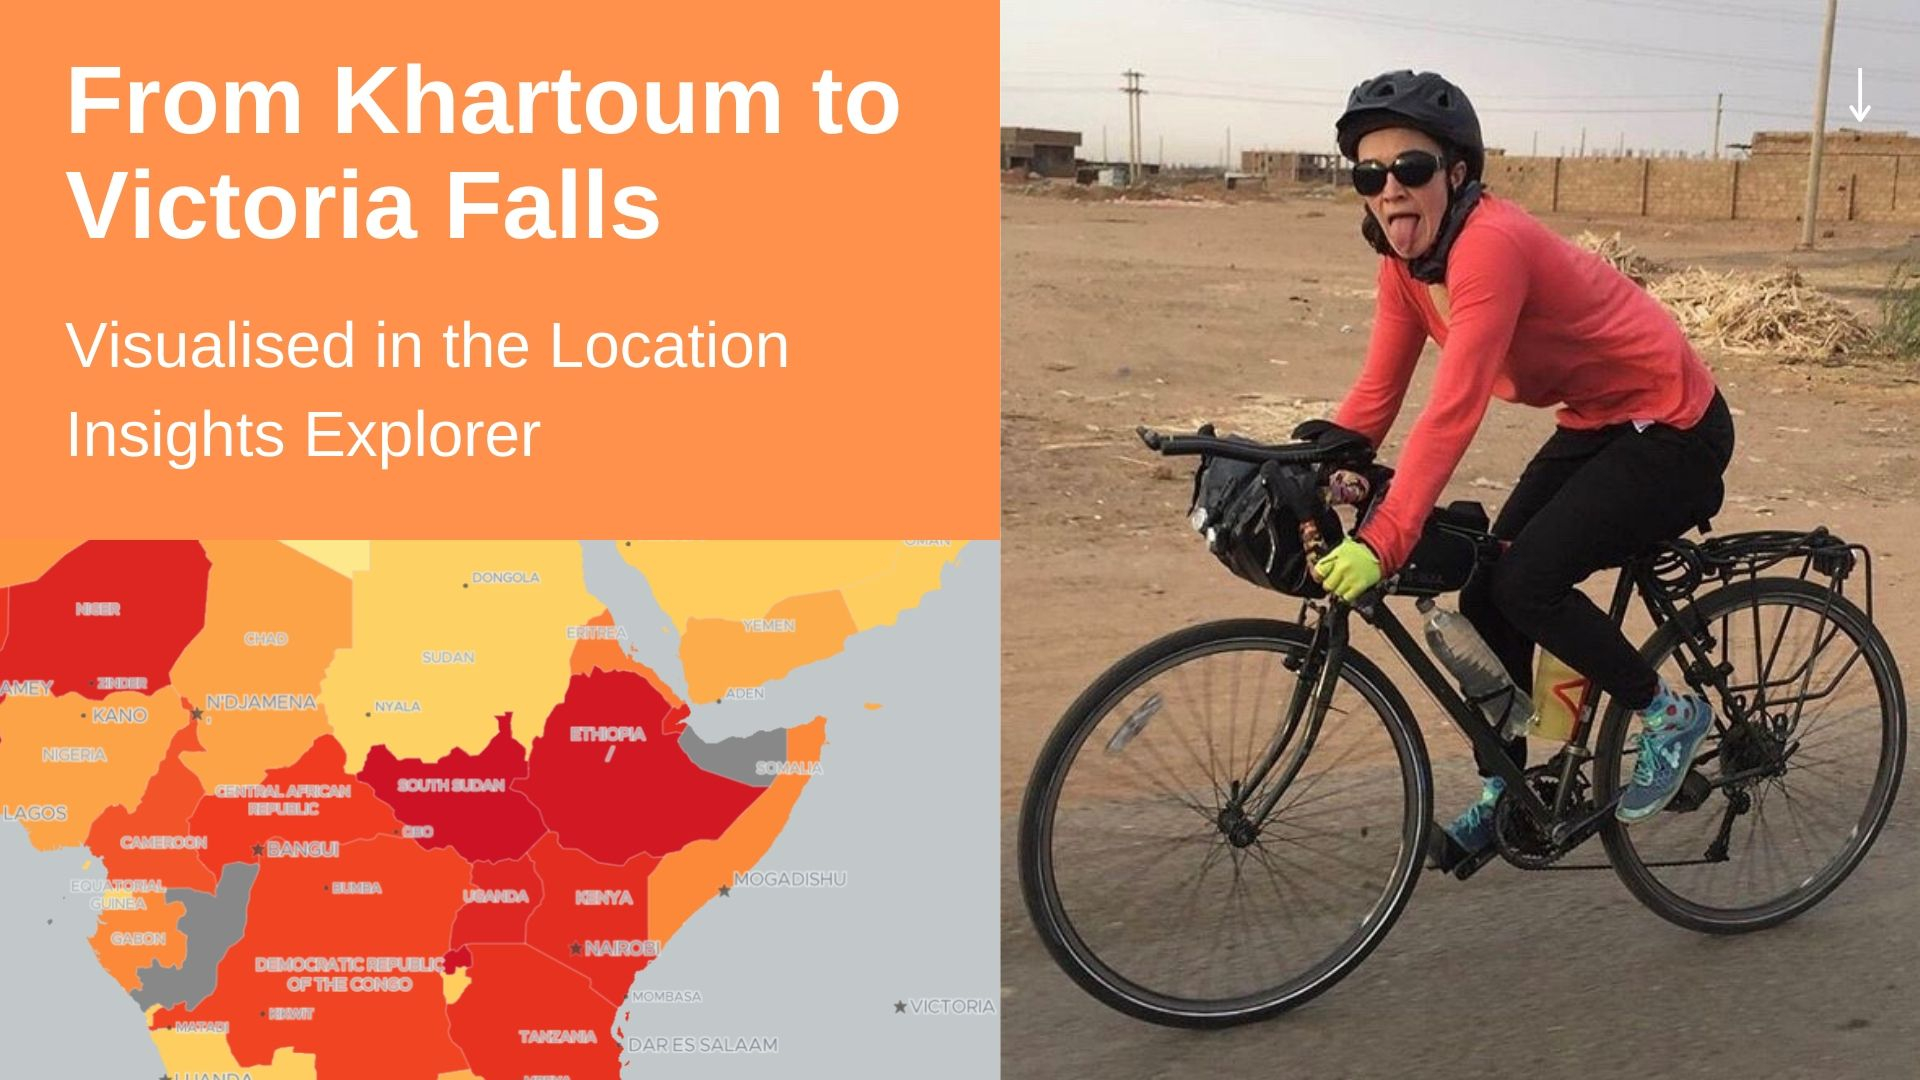 Alice cycles from Khartoum to Victoria Falls - a journey through LINE